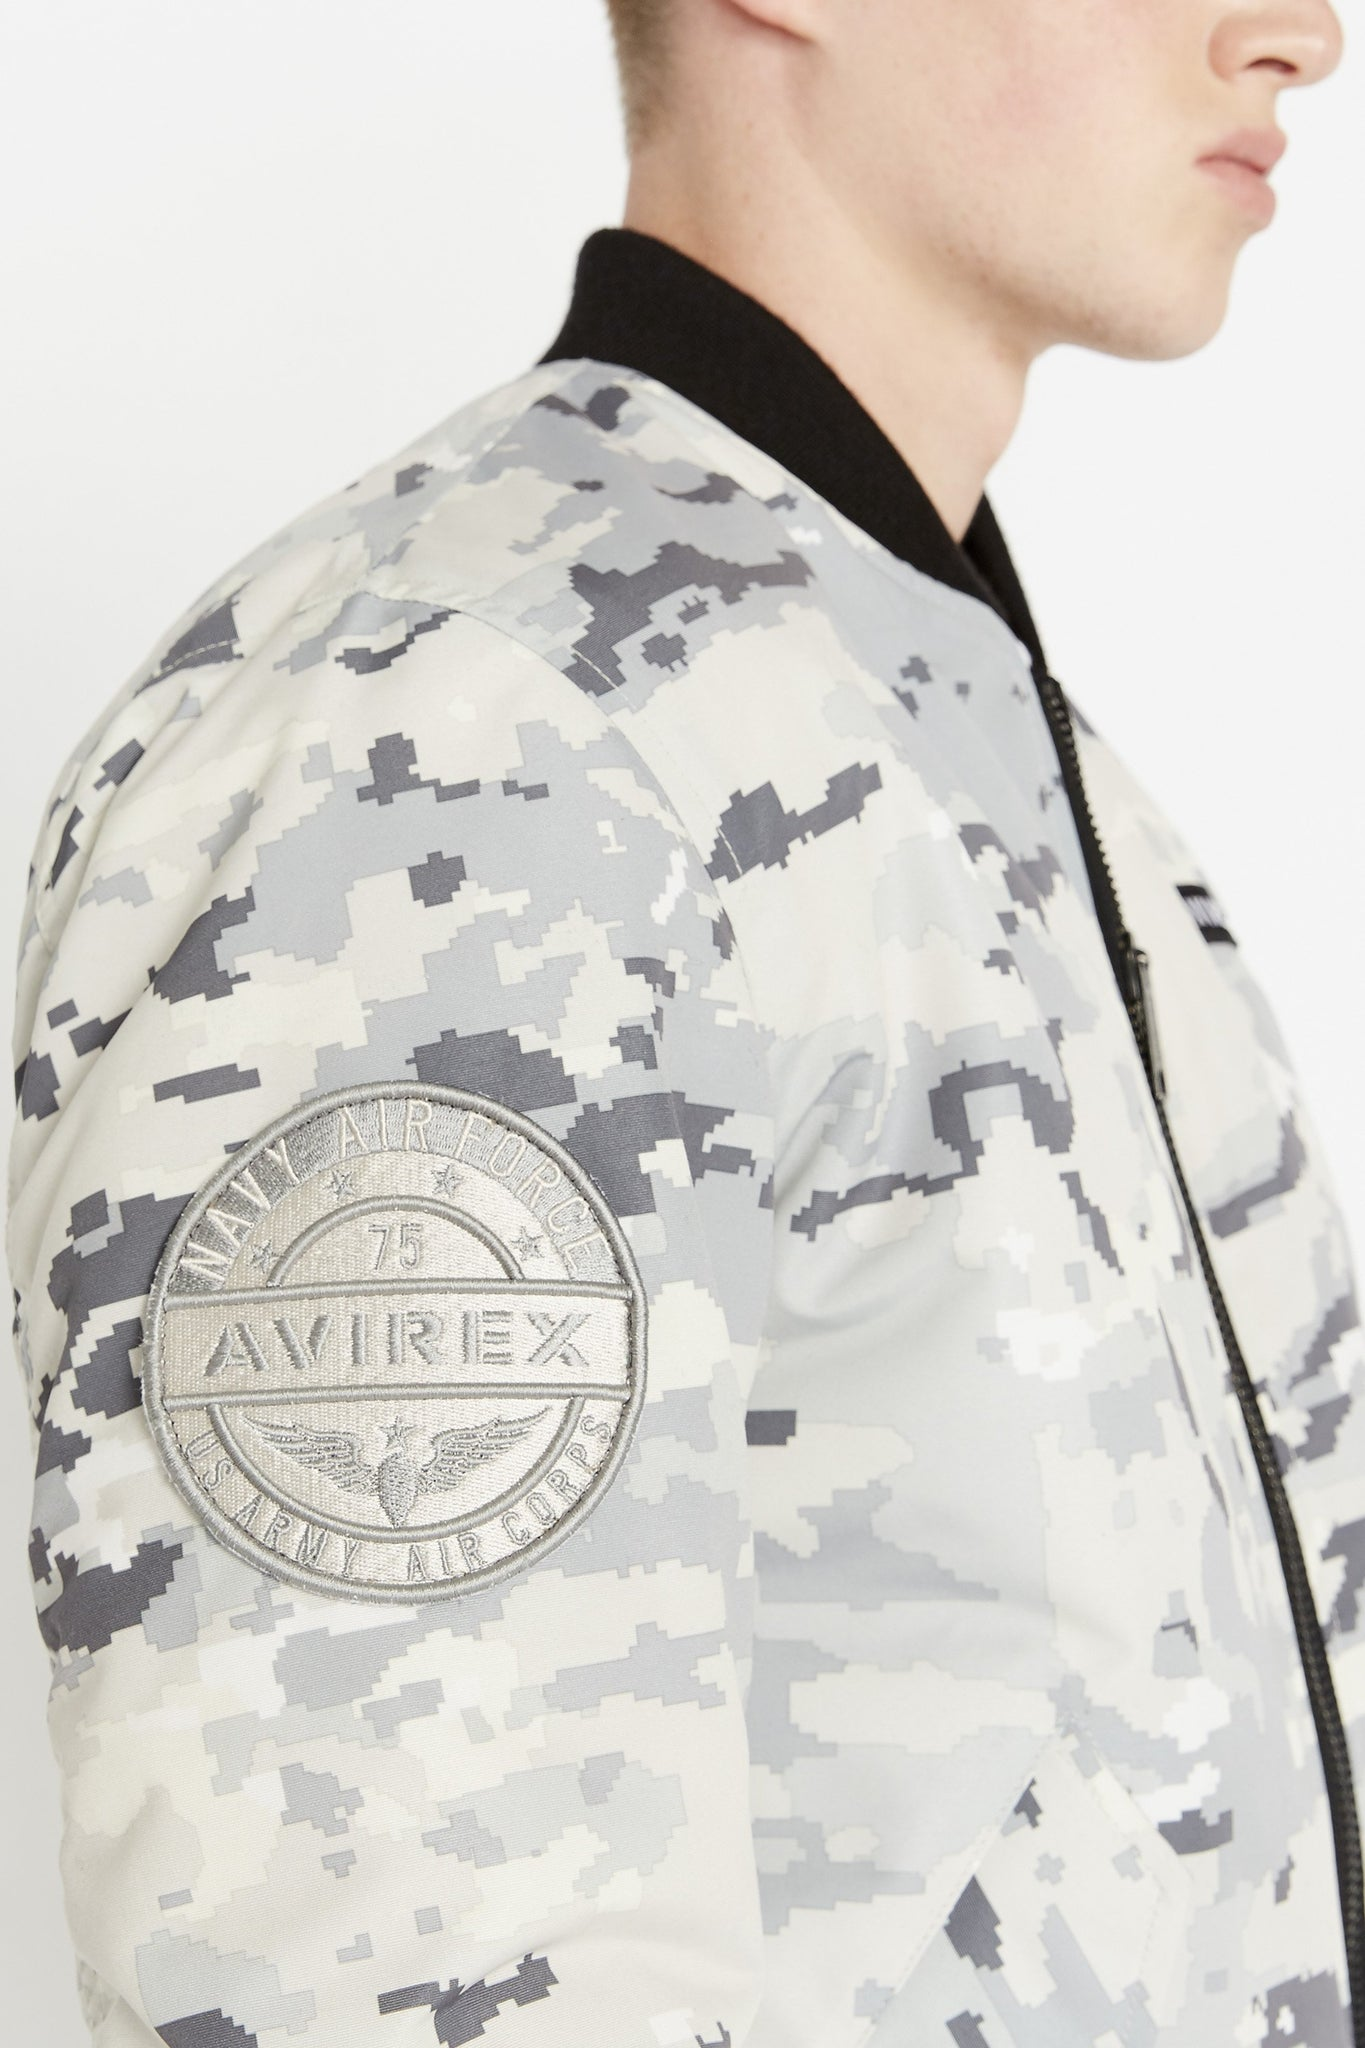 Detailed view of Avirex round patch on the right sleeve